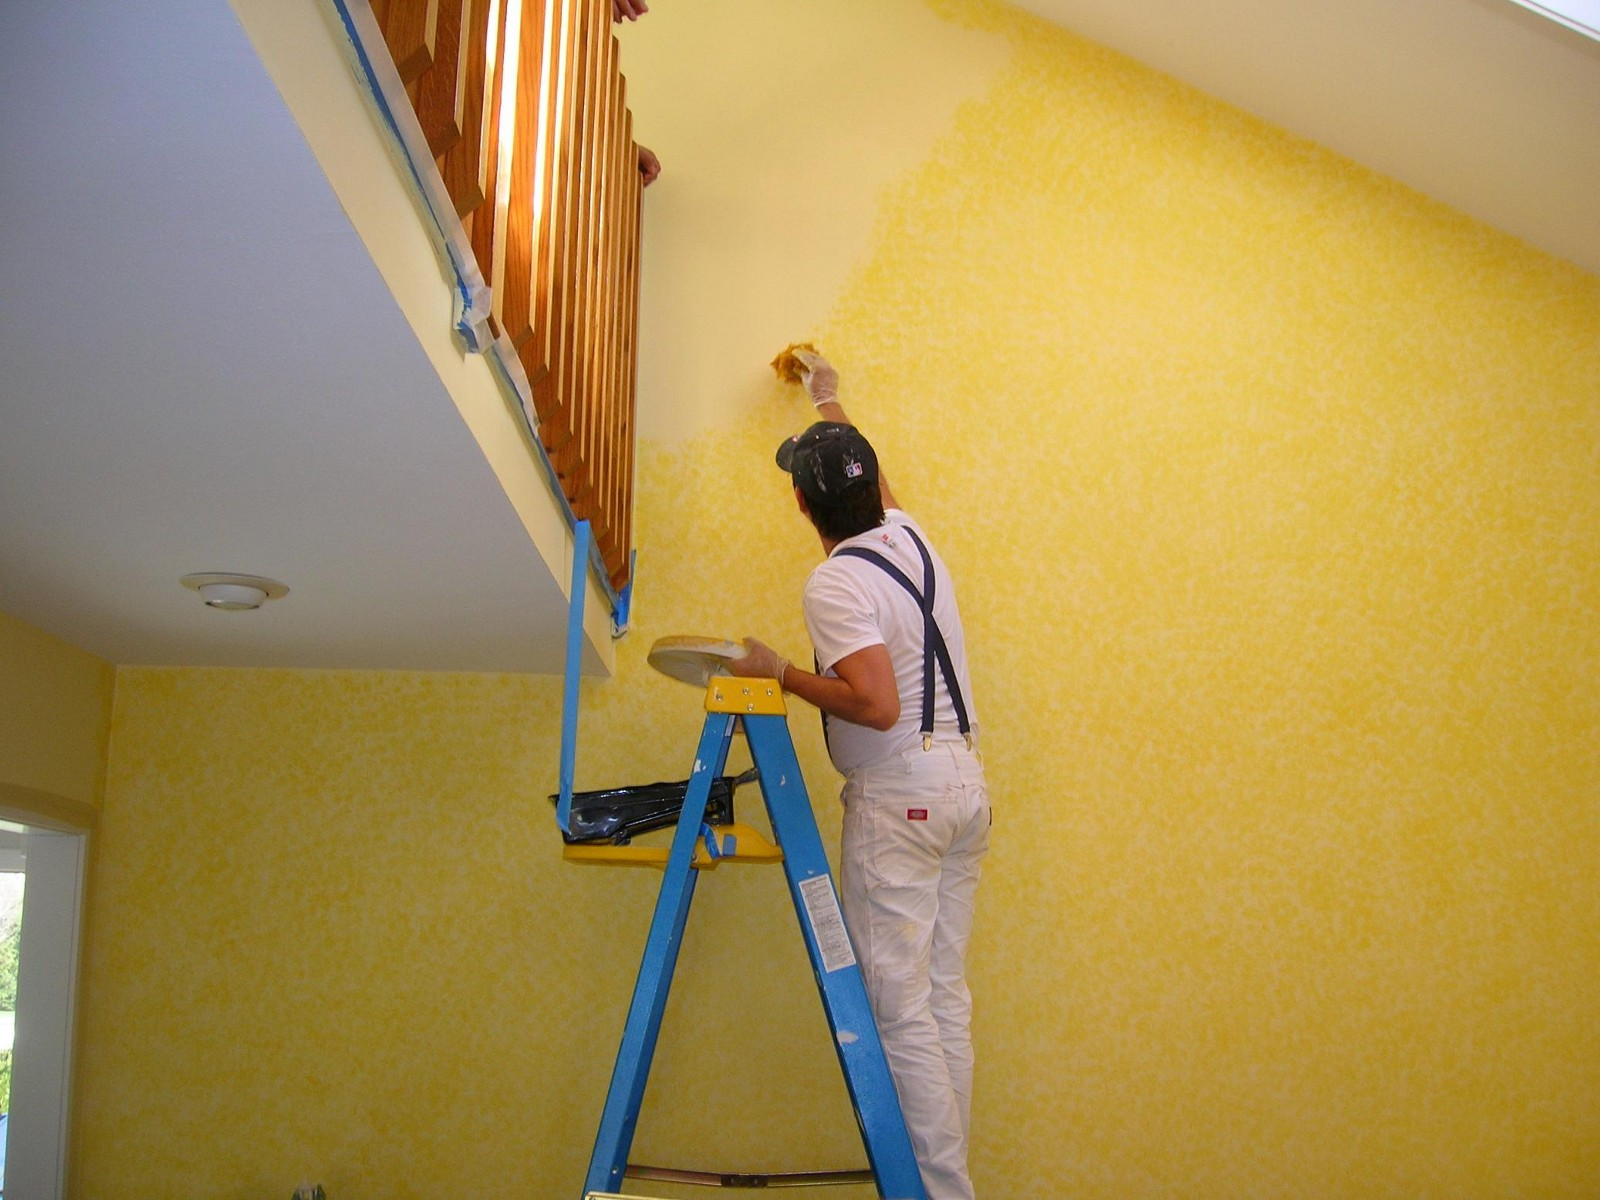 Home painting service by house painters – Jaxon Cooper – Medium